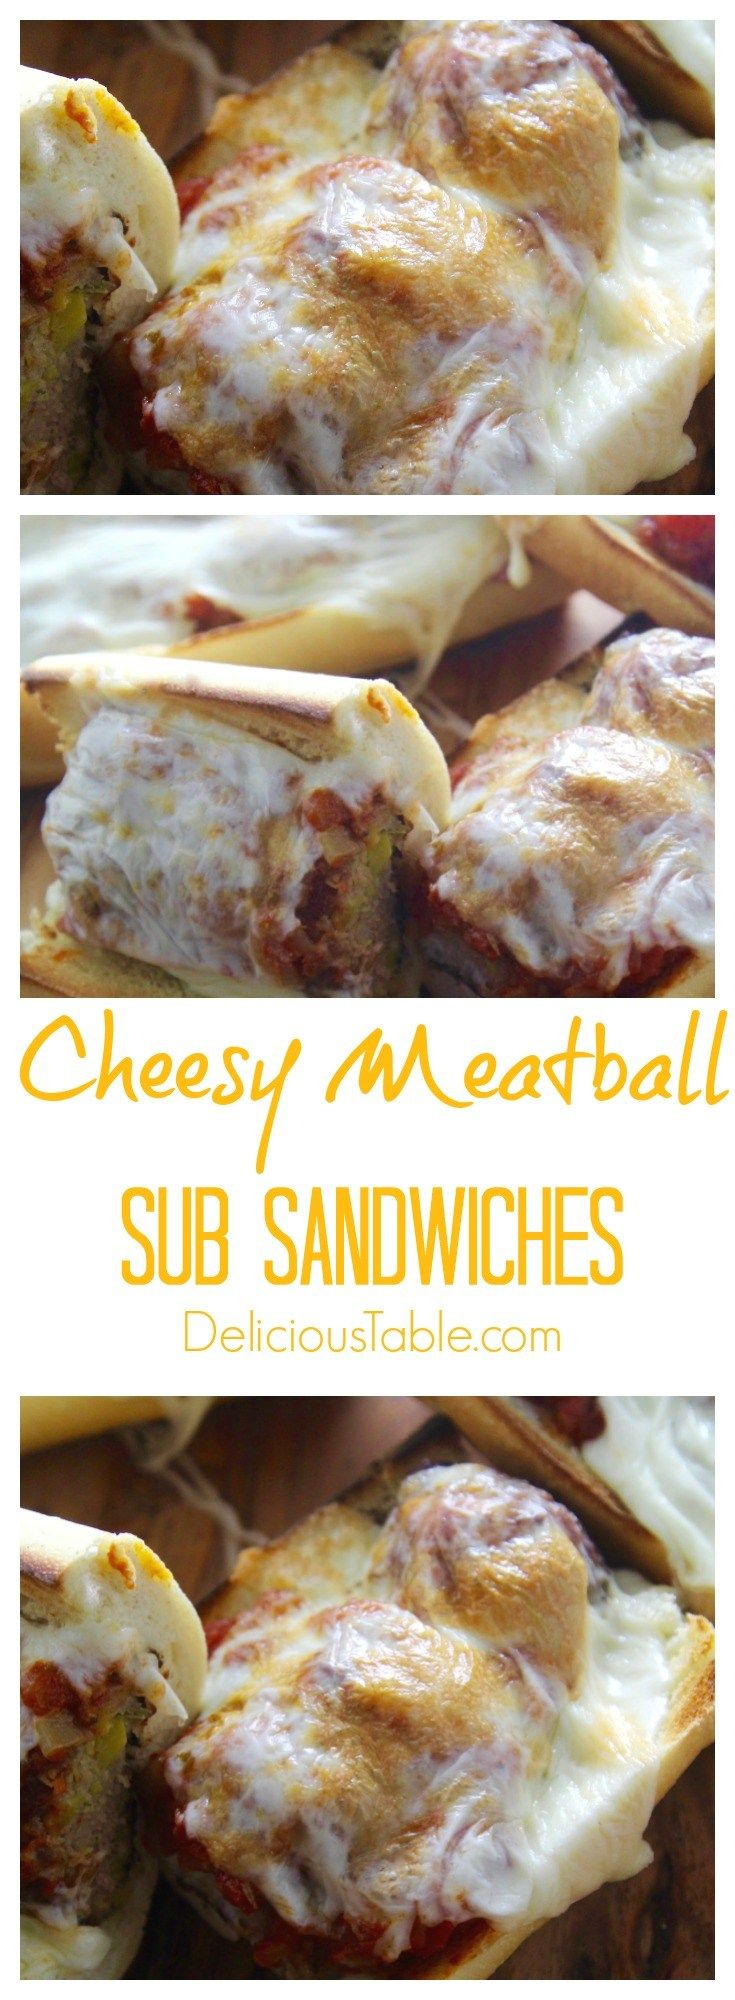 Cheesy Meatball Sub Sandwiches with turkey meatballs and a simple homemade marinara are perfect for a lazy weekend or a big game party like the Super Bowl.